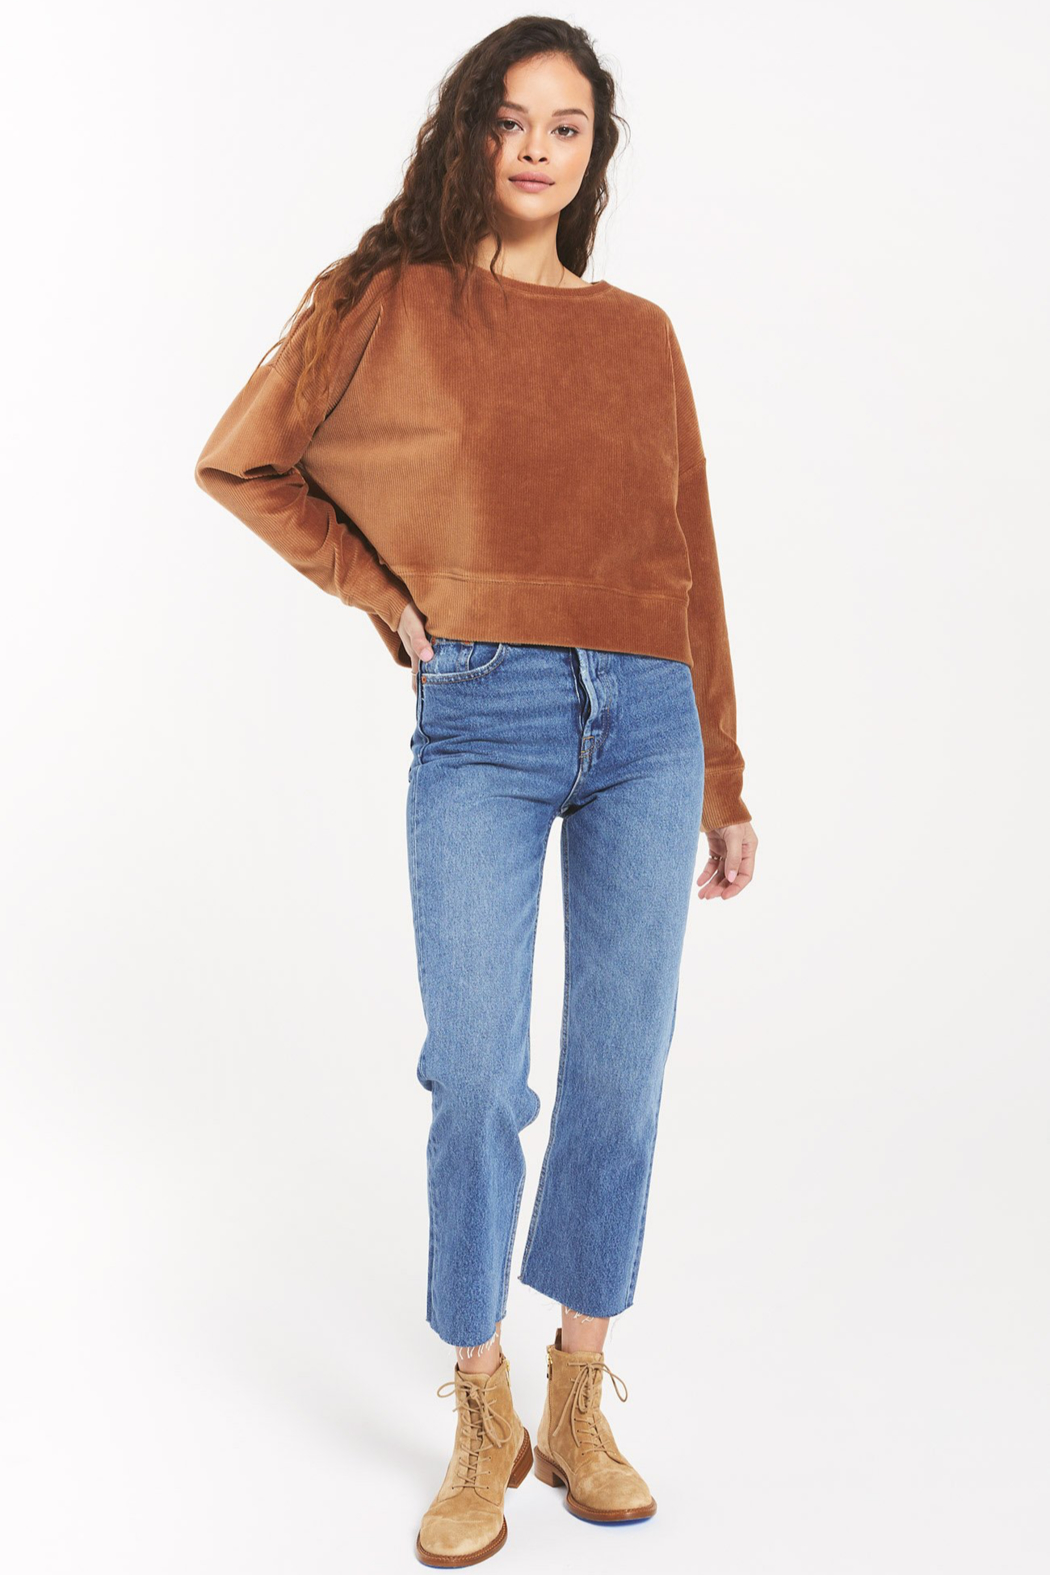 z supply Astrid Cord Pullover - Side Cropped Image